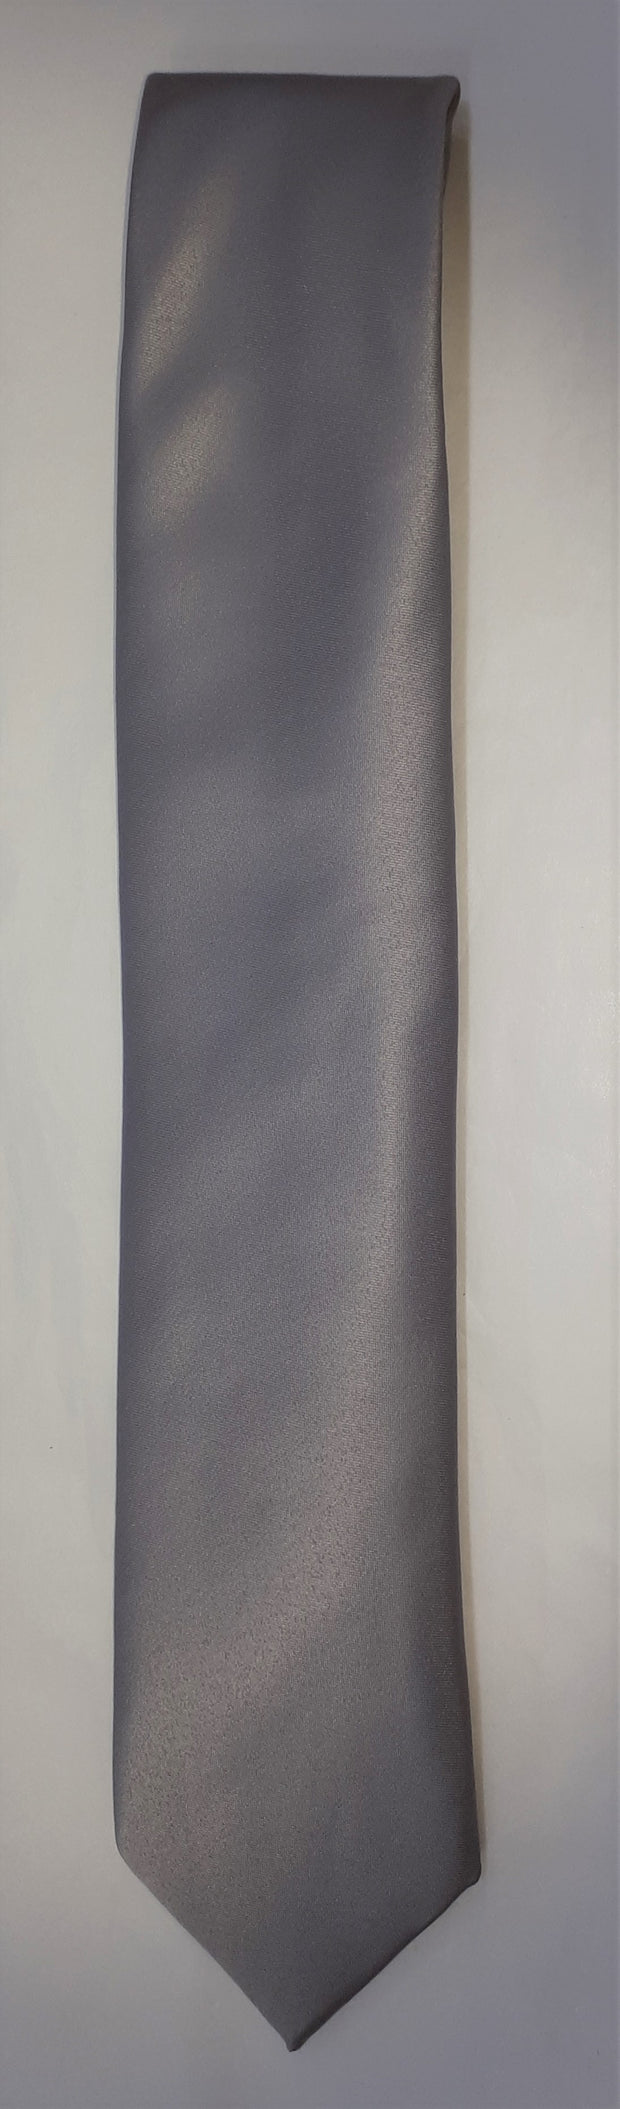 FORMAL SATIN TIE SILVER